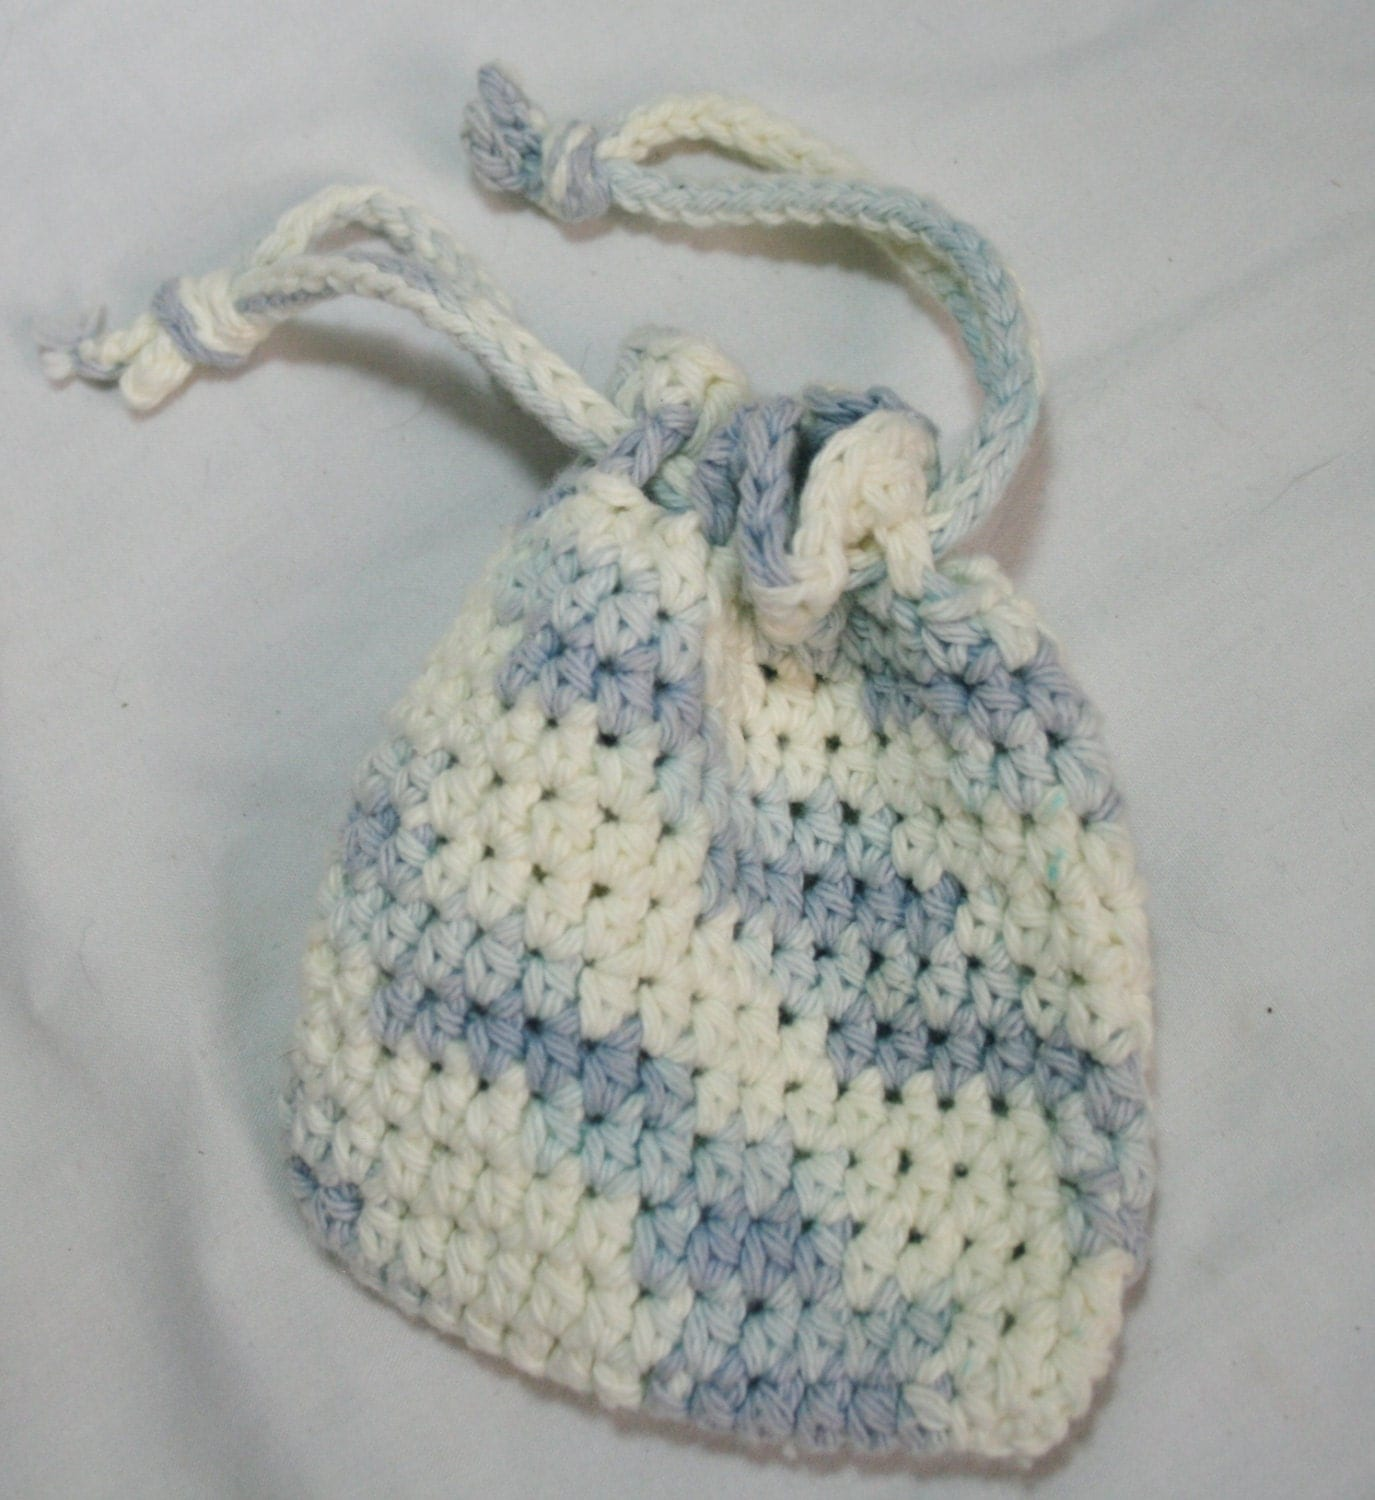 Crochet Small Bag : Add it to your favorites to revisit it later.